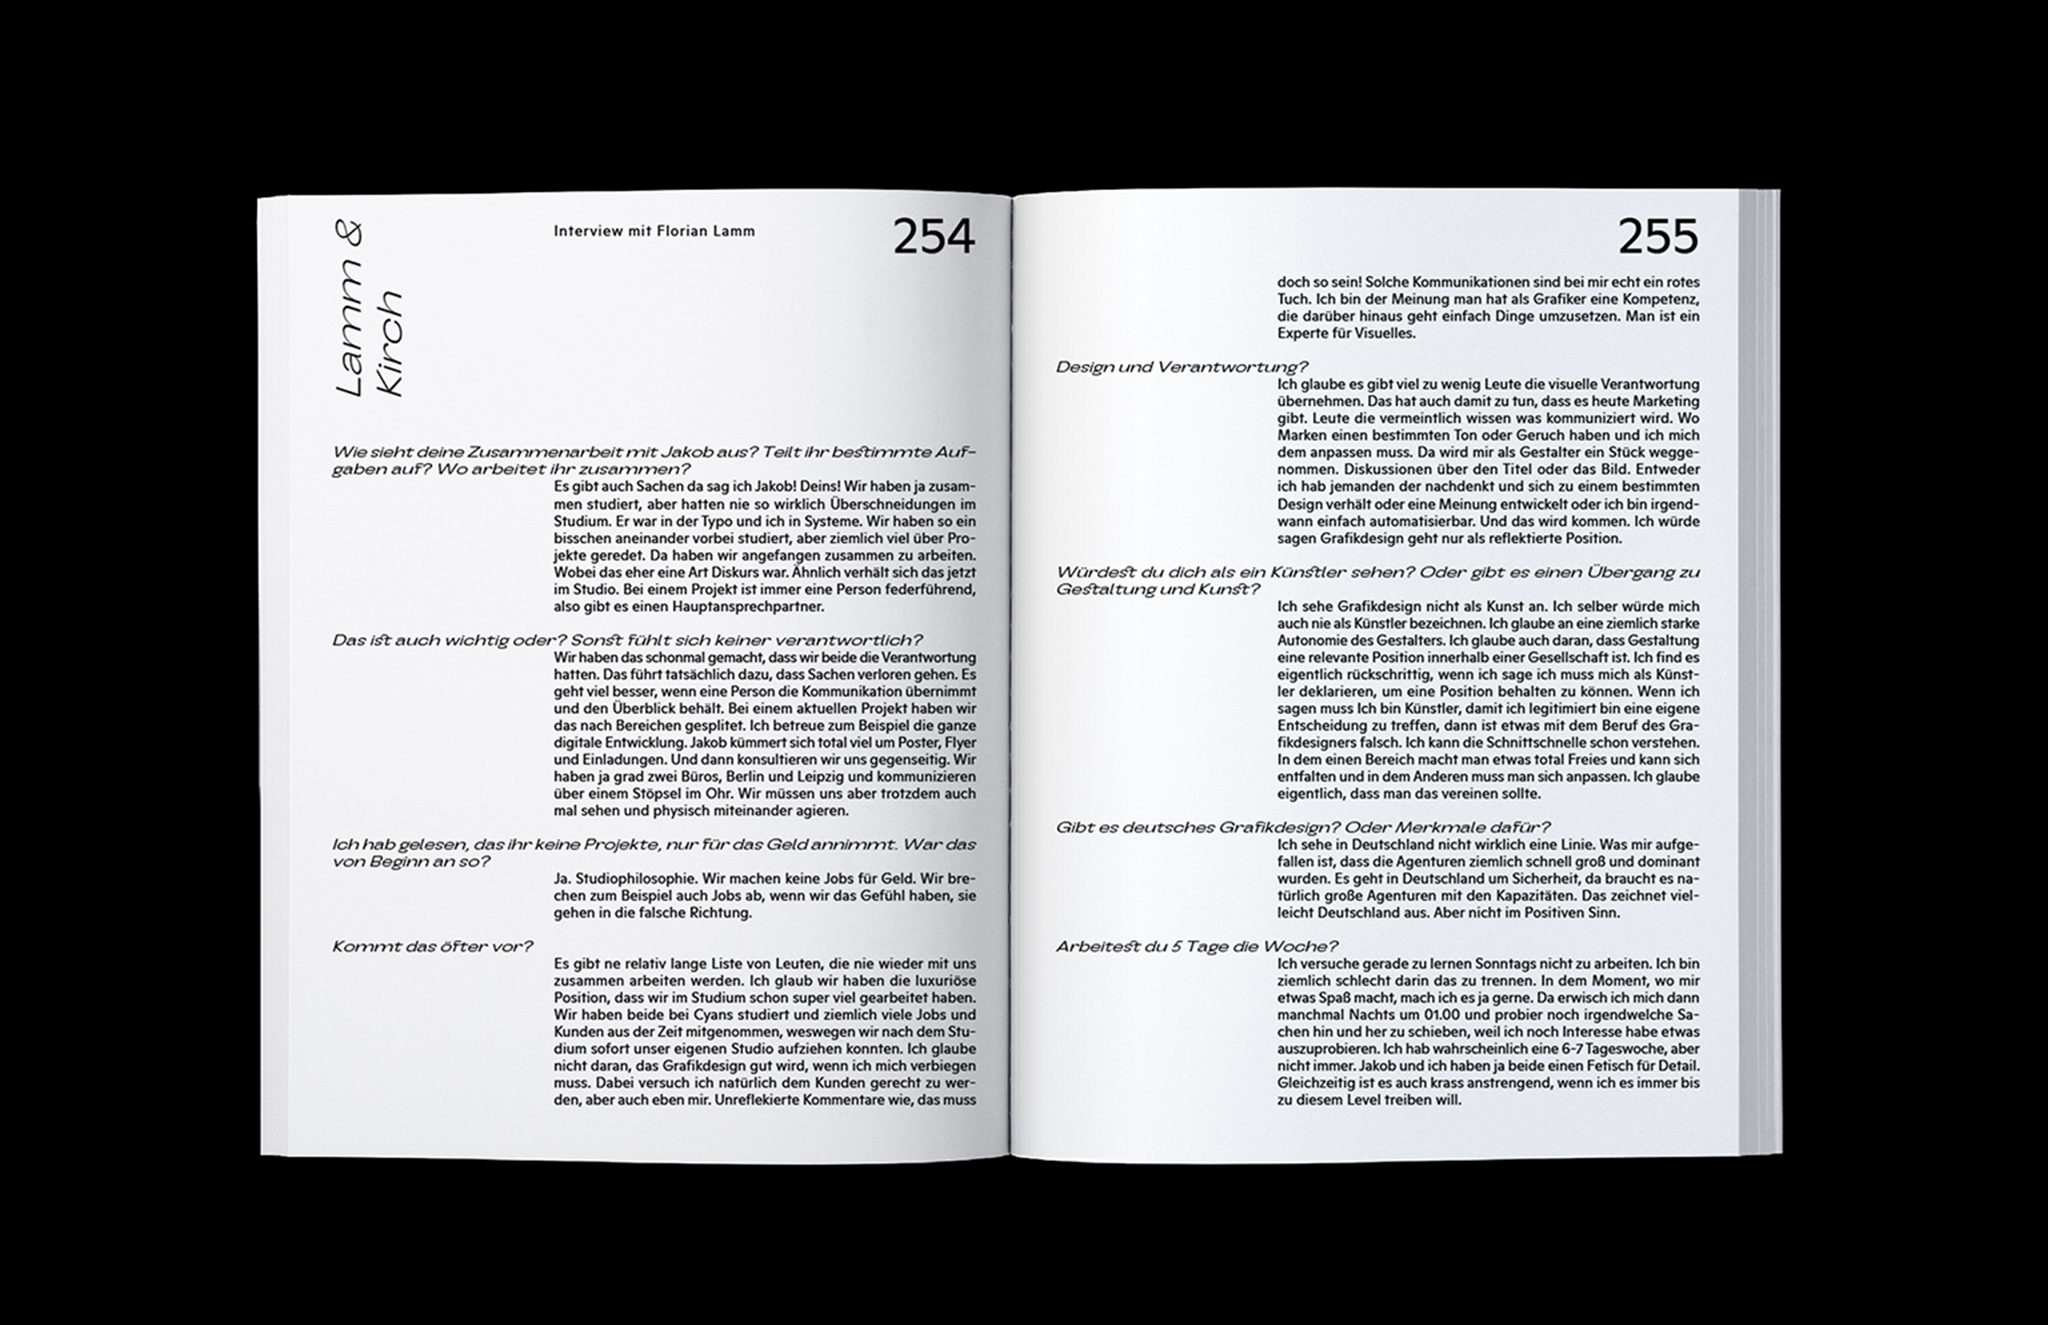 Daniel-Stuhlpfarrer_Visual-Communication_Graphic-Design_Deutsches-Grafikdesign_Book_7_Interview_lamm-und-kirch